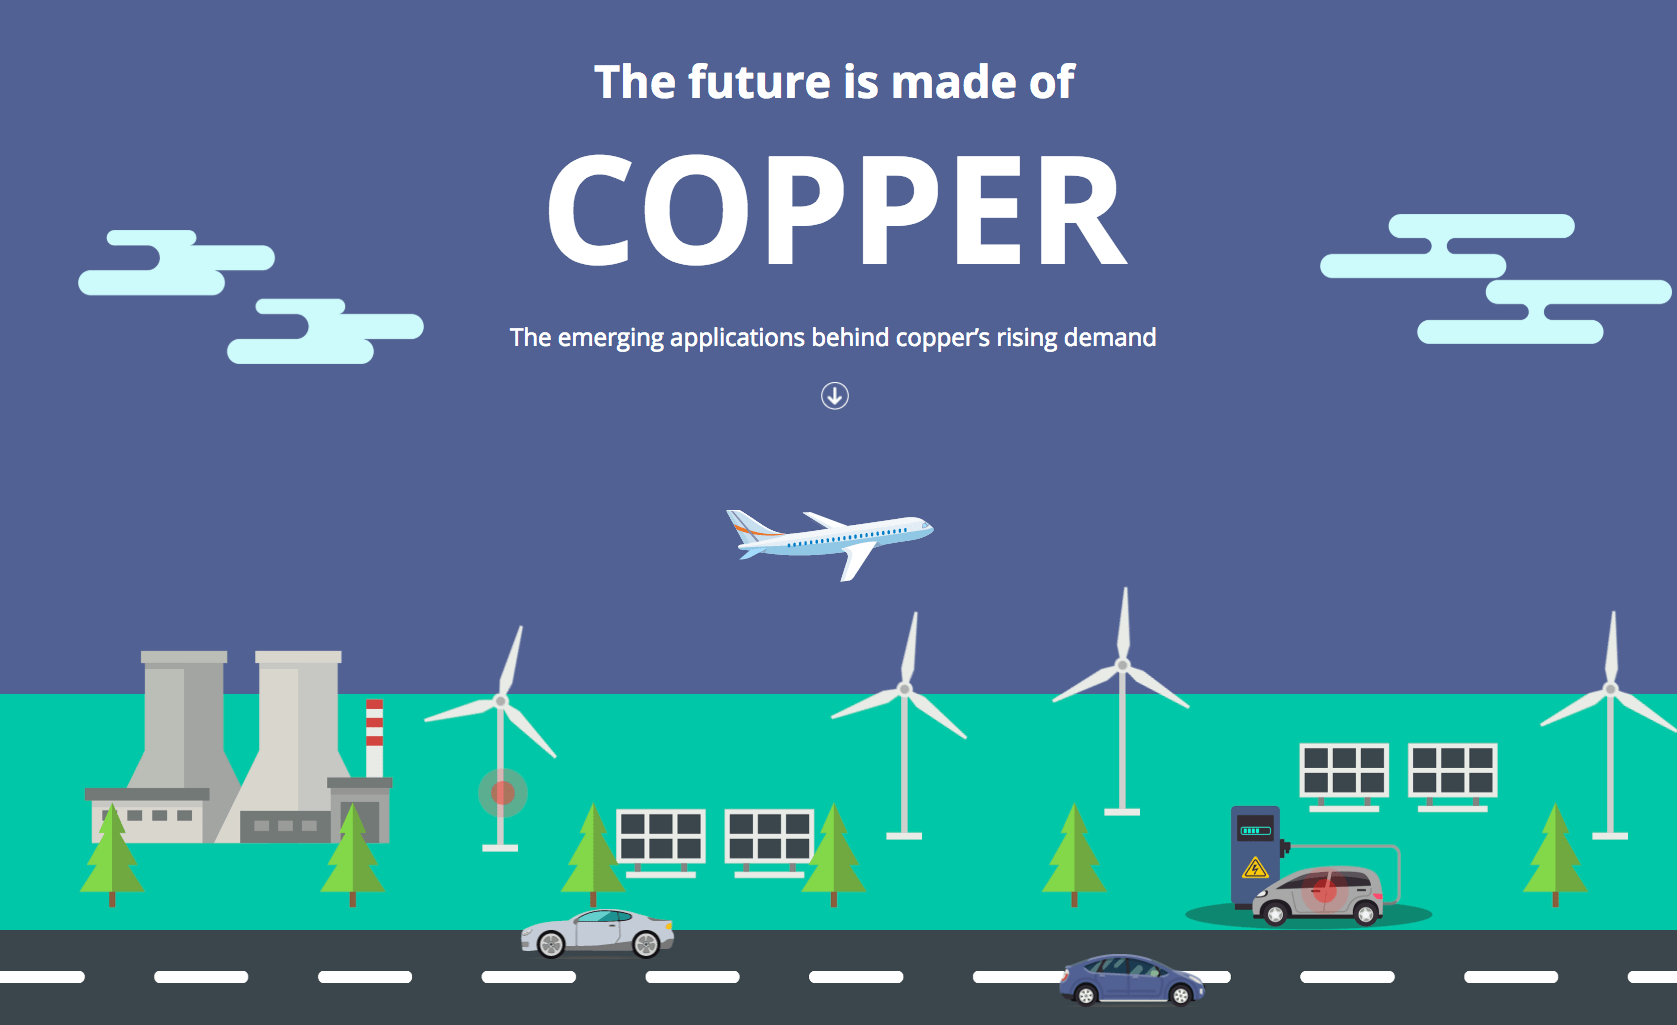 The future is made of copper